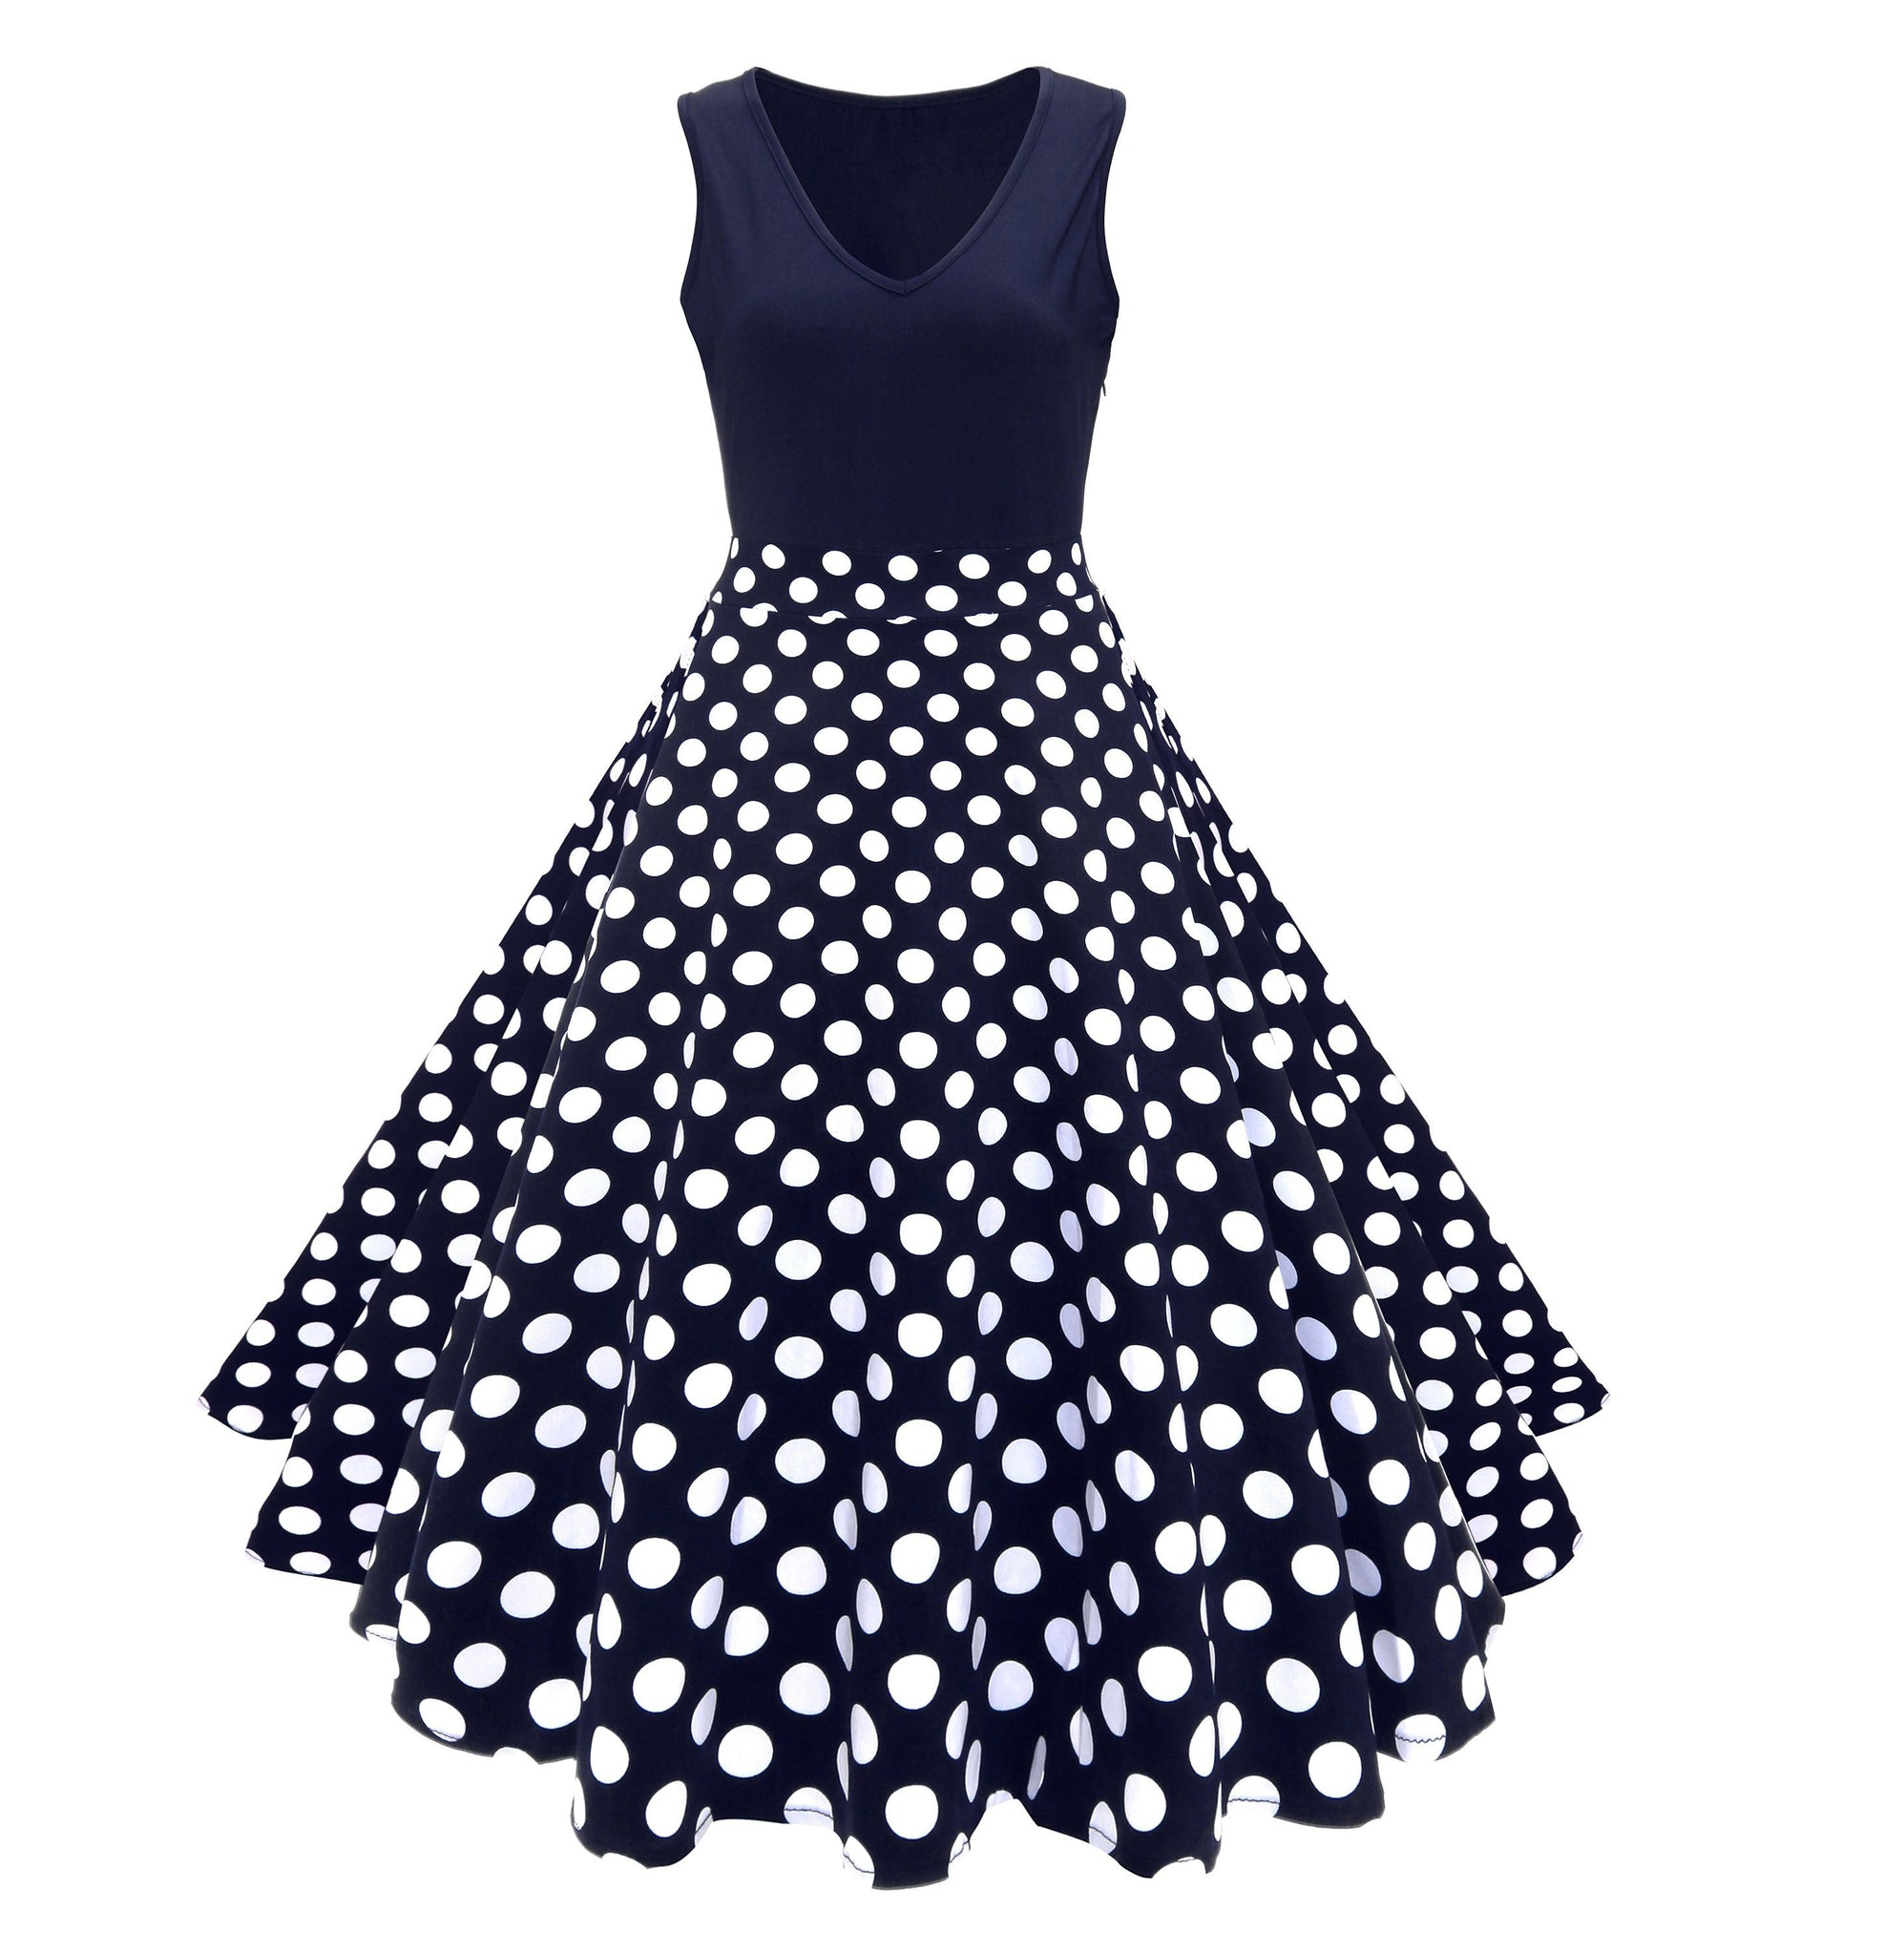 Women's Casual 1950's Vintage Polka Dot Holiday Cocktail Party Dress